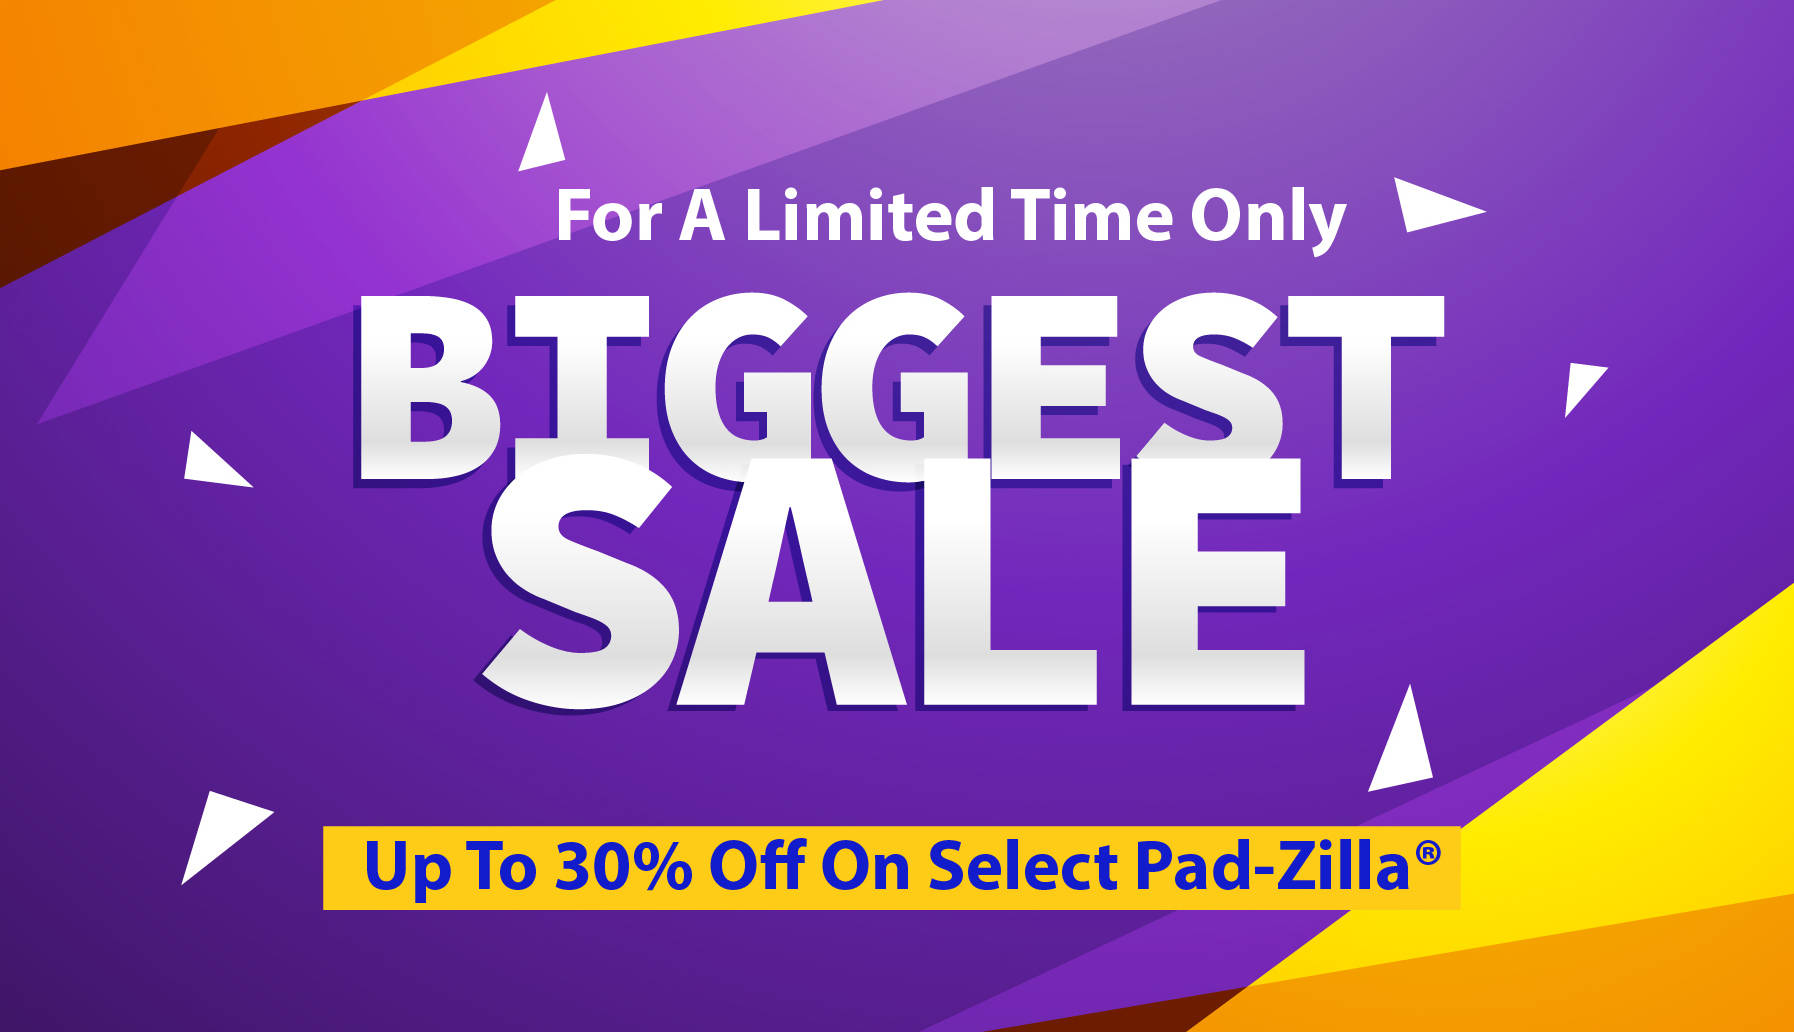 mousepads.cool - pad-zilla® world's biggest mouse pads - create your